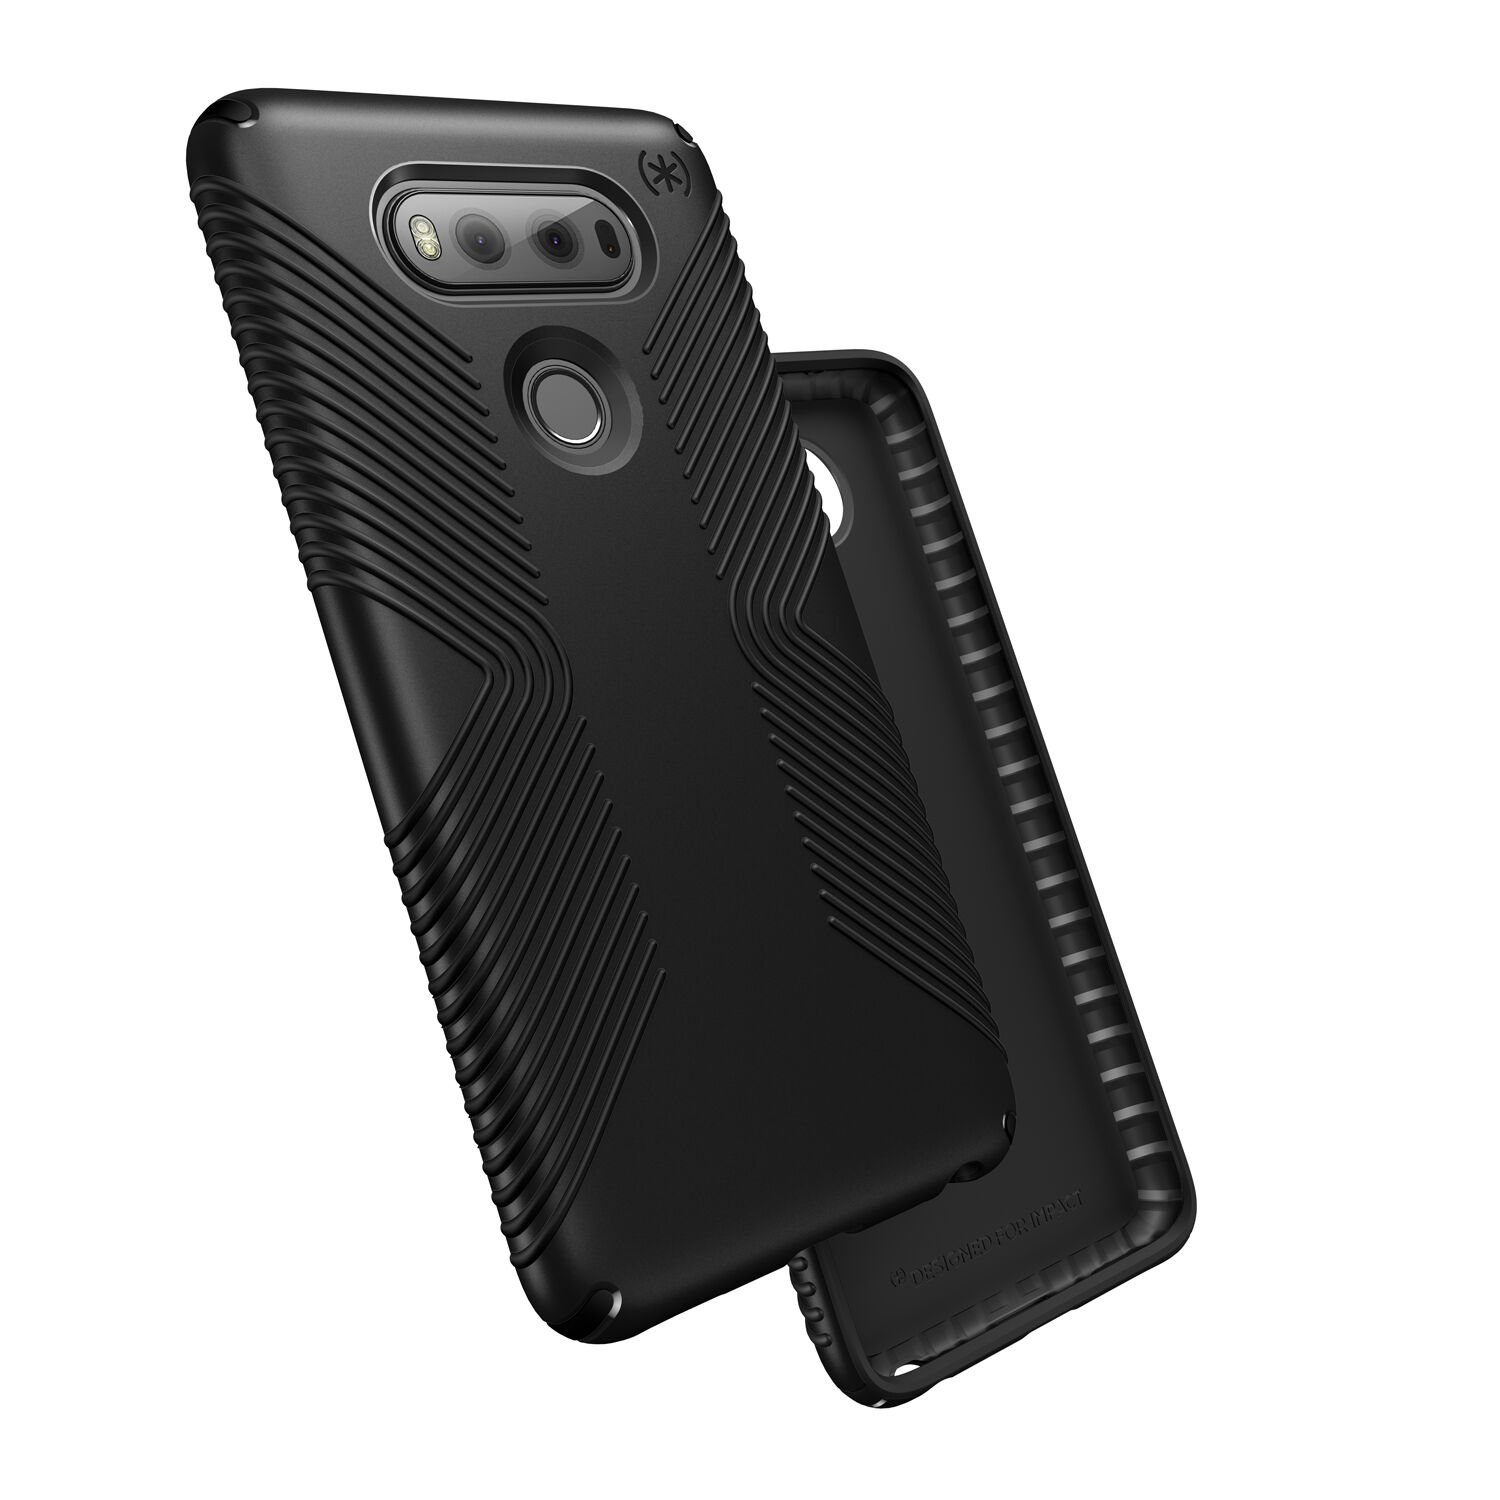 Speck makes award-winning cases designed to make an impact - and take one. Shop slim protective iPhone cases, iPad cases, MacBook cases, Samsung cases and more.